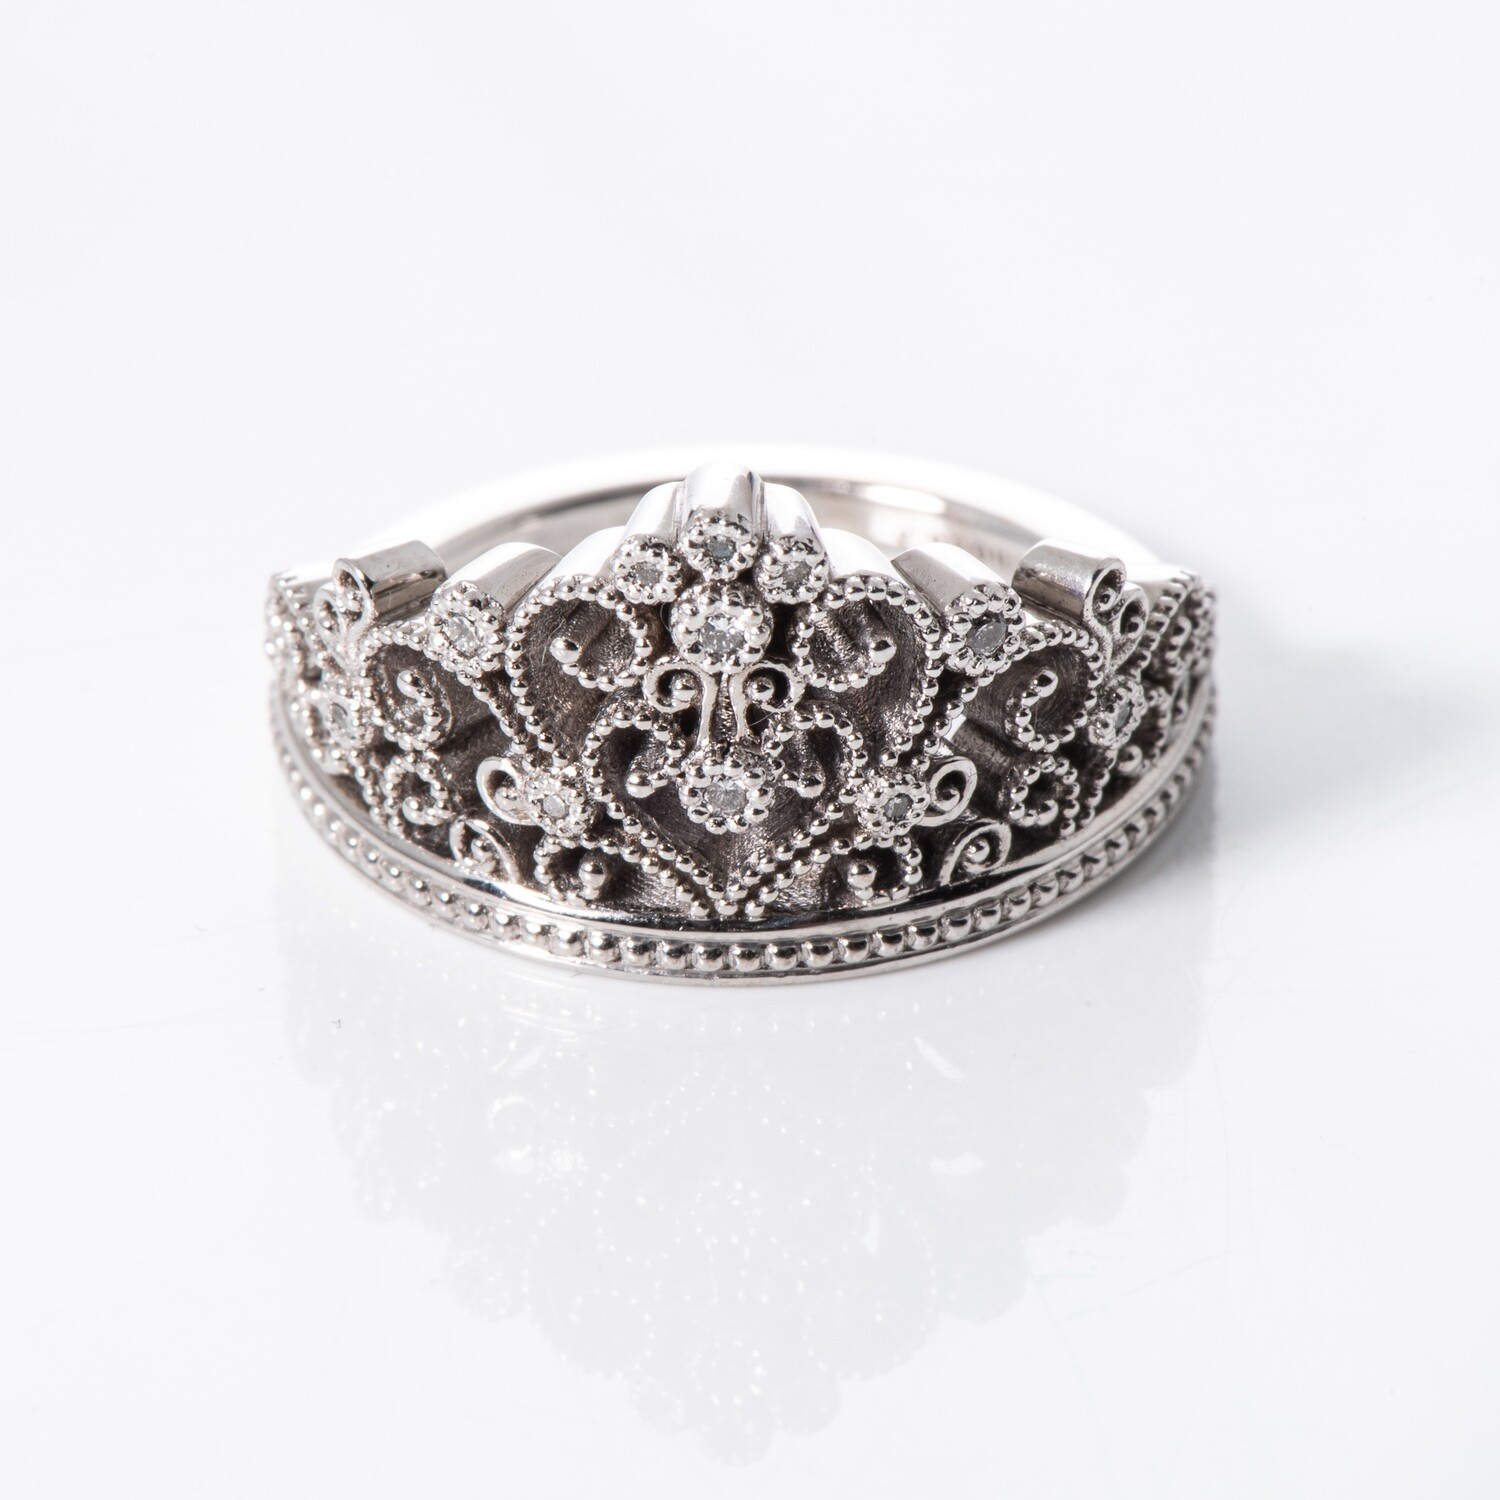 18K White Gold Tiara Ring